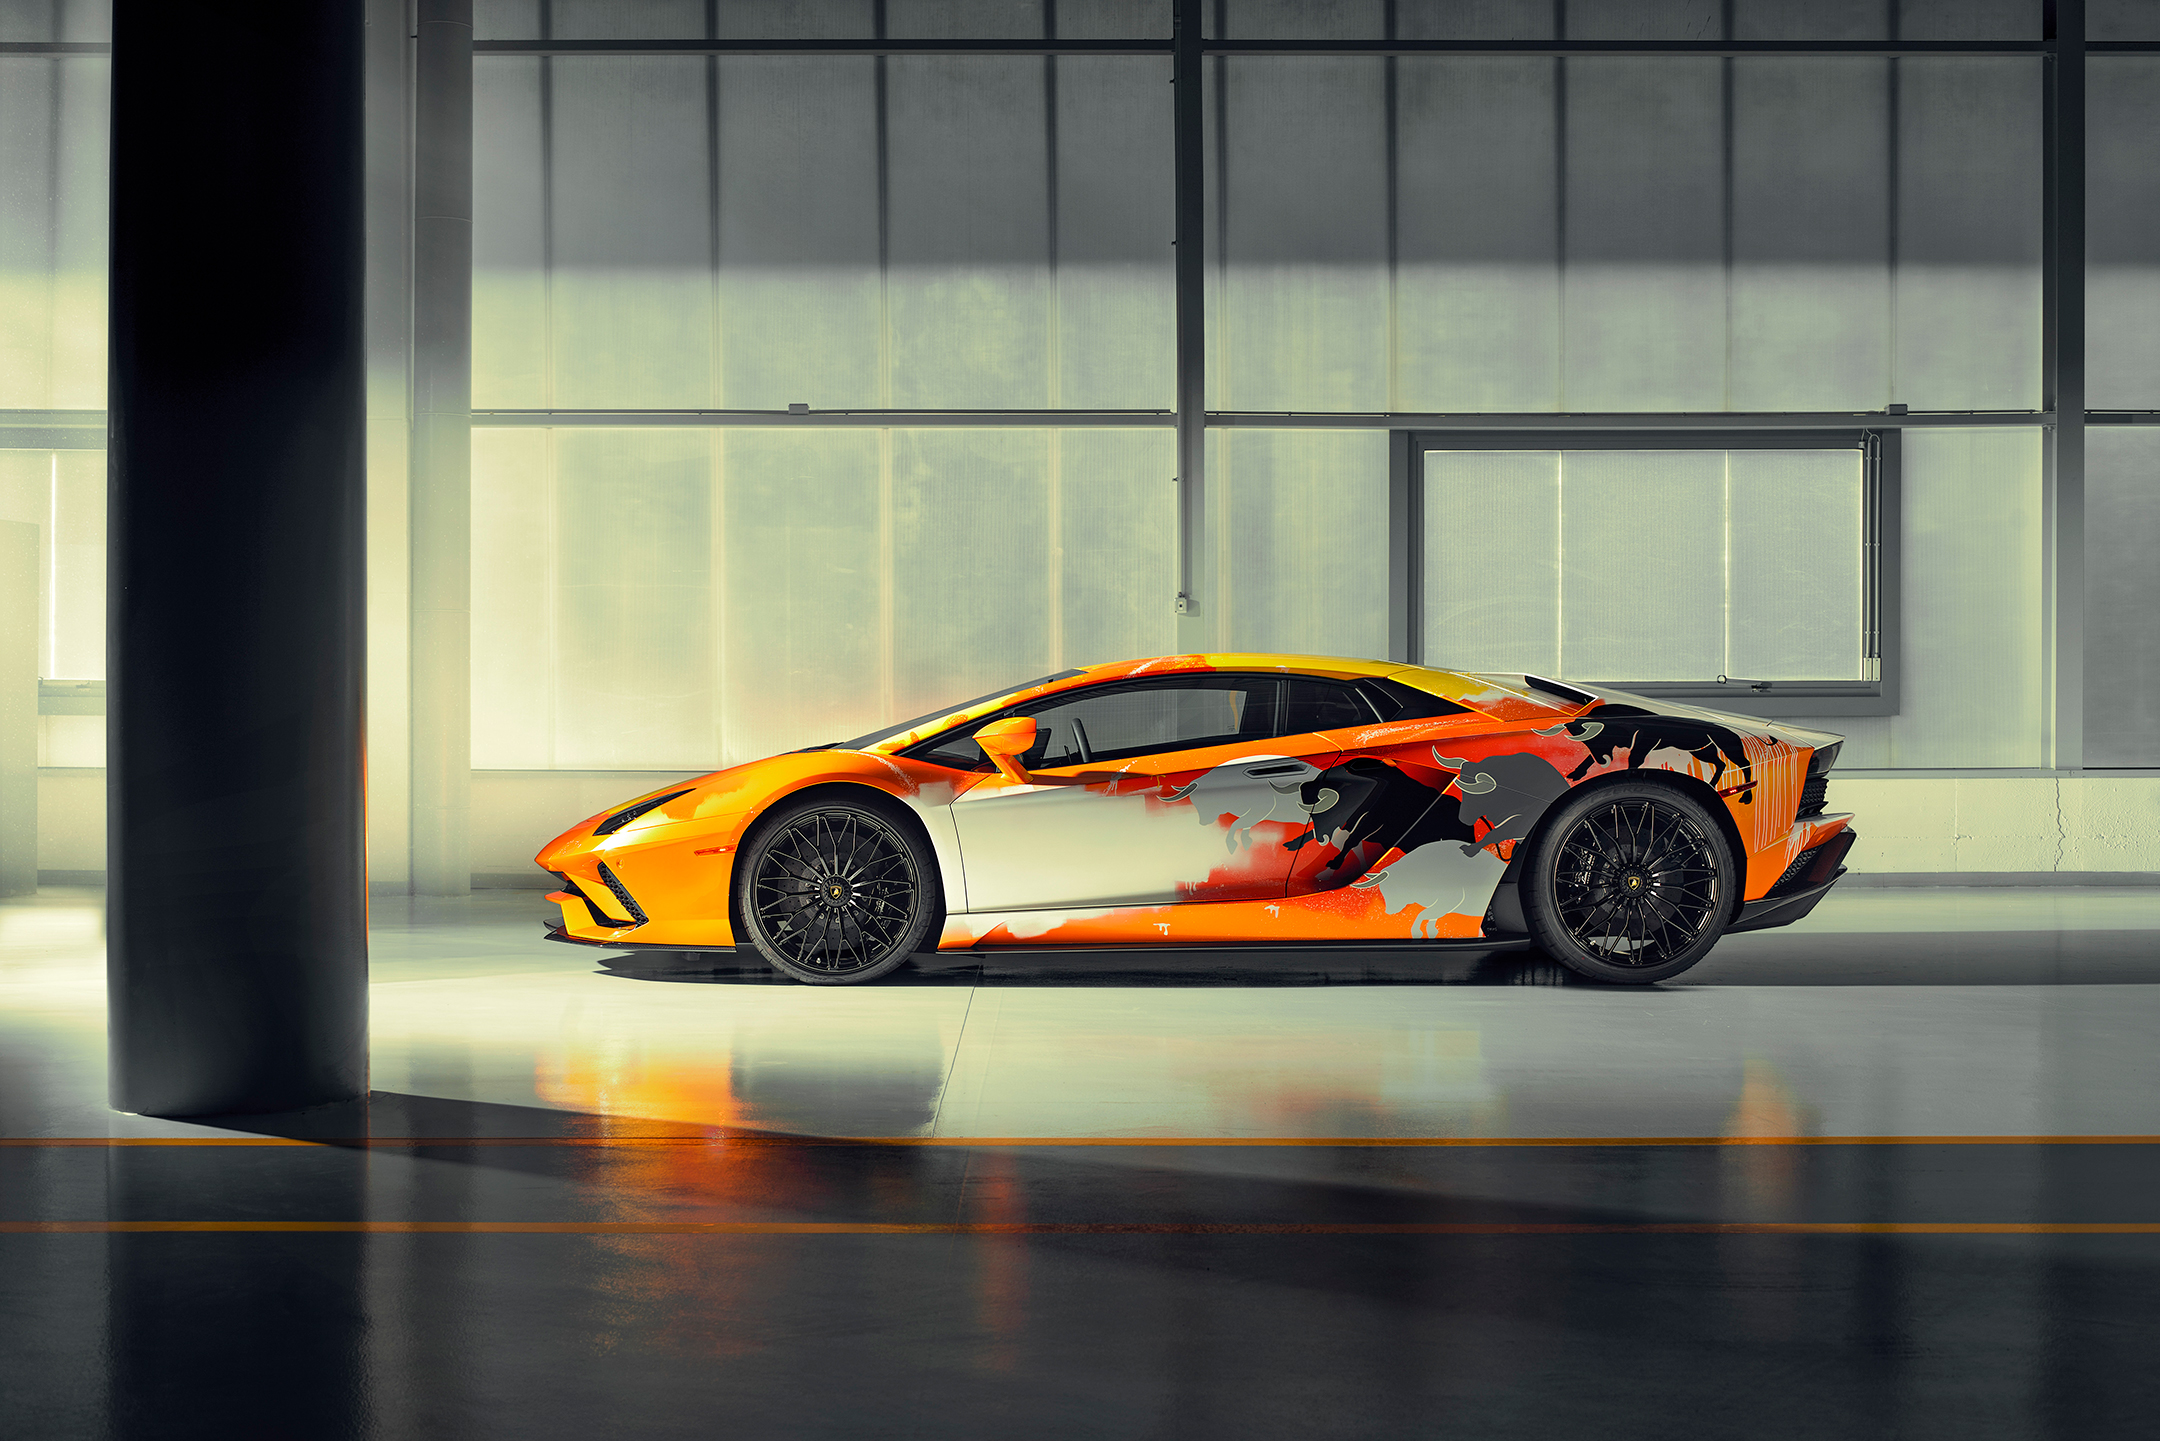 Lamborghini one-off Aventador S by Skyler Grey Art - 2019 - side-face left / profil gauche